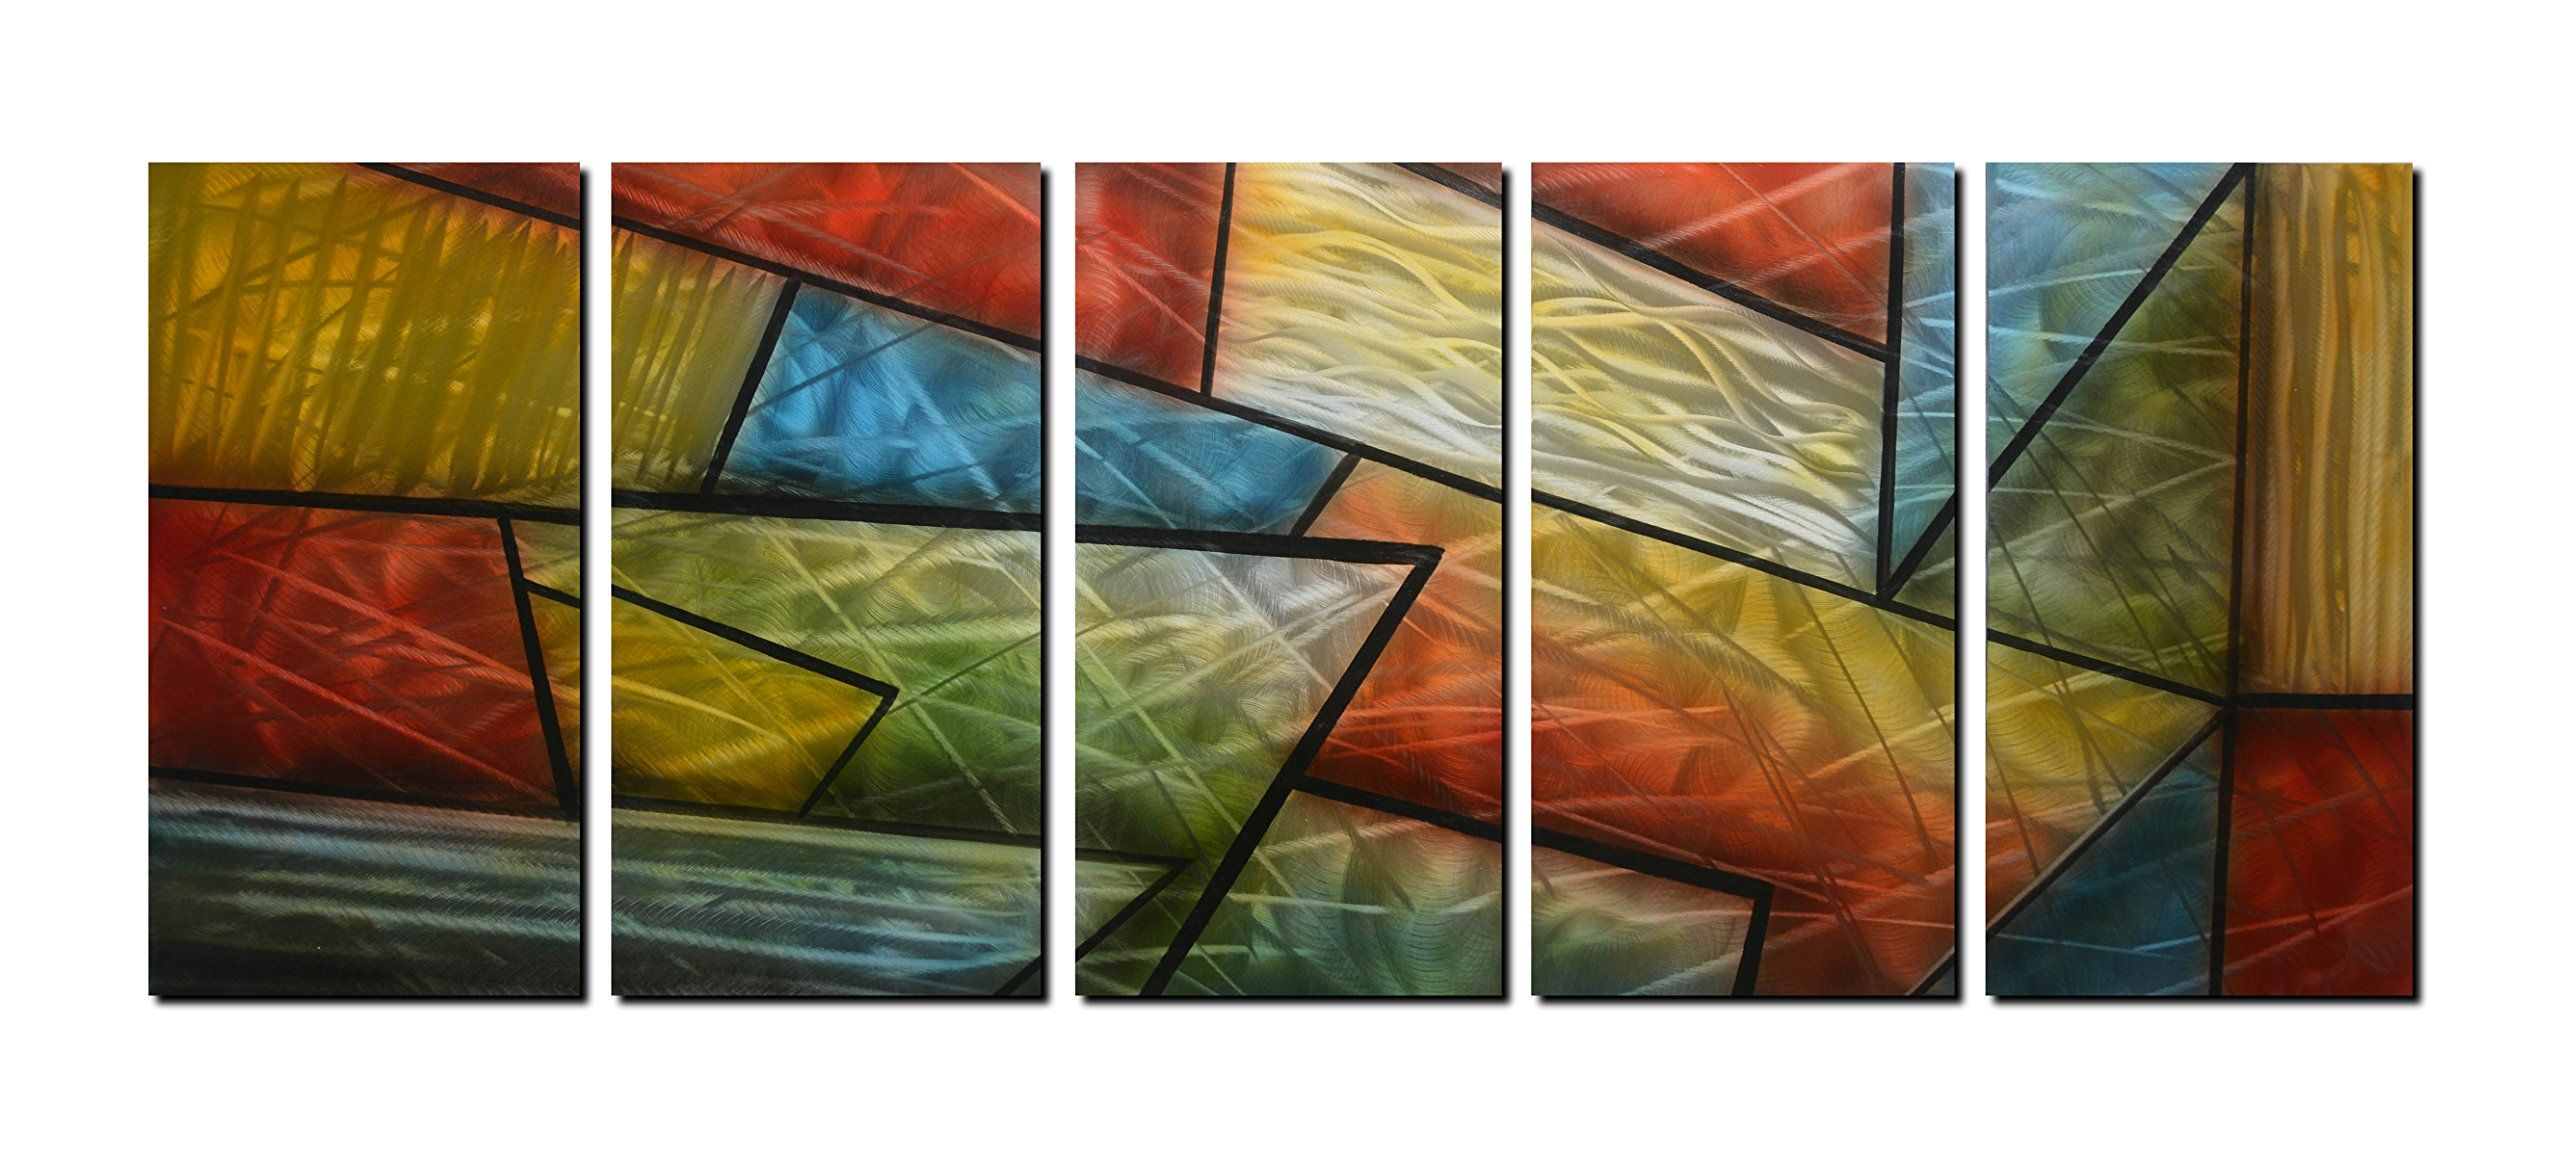 Winpeak art multicolored aluminum metal wall art abstract picture